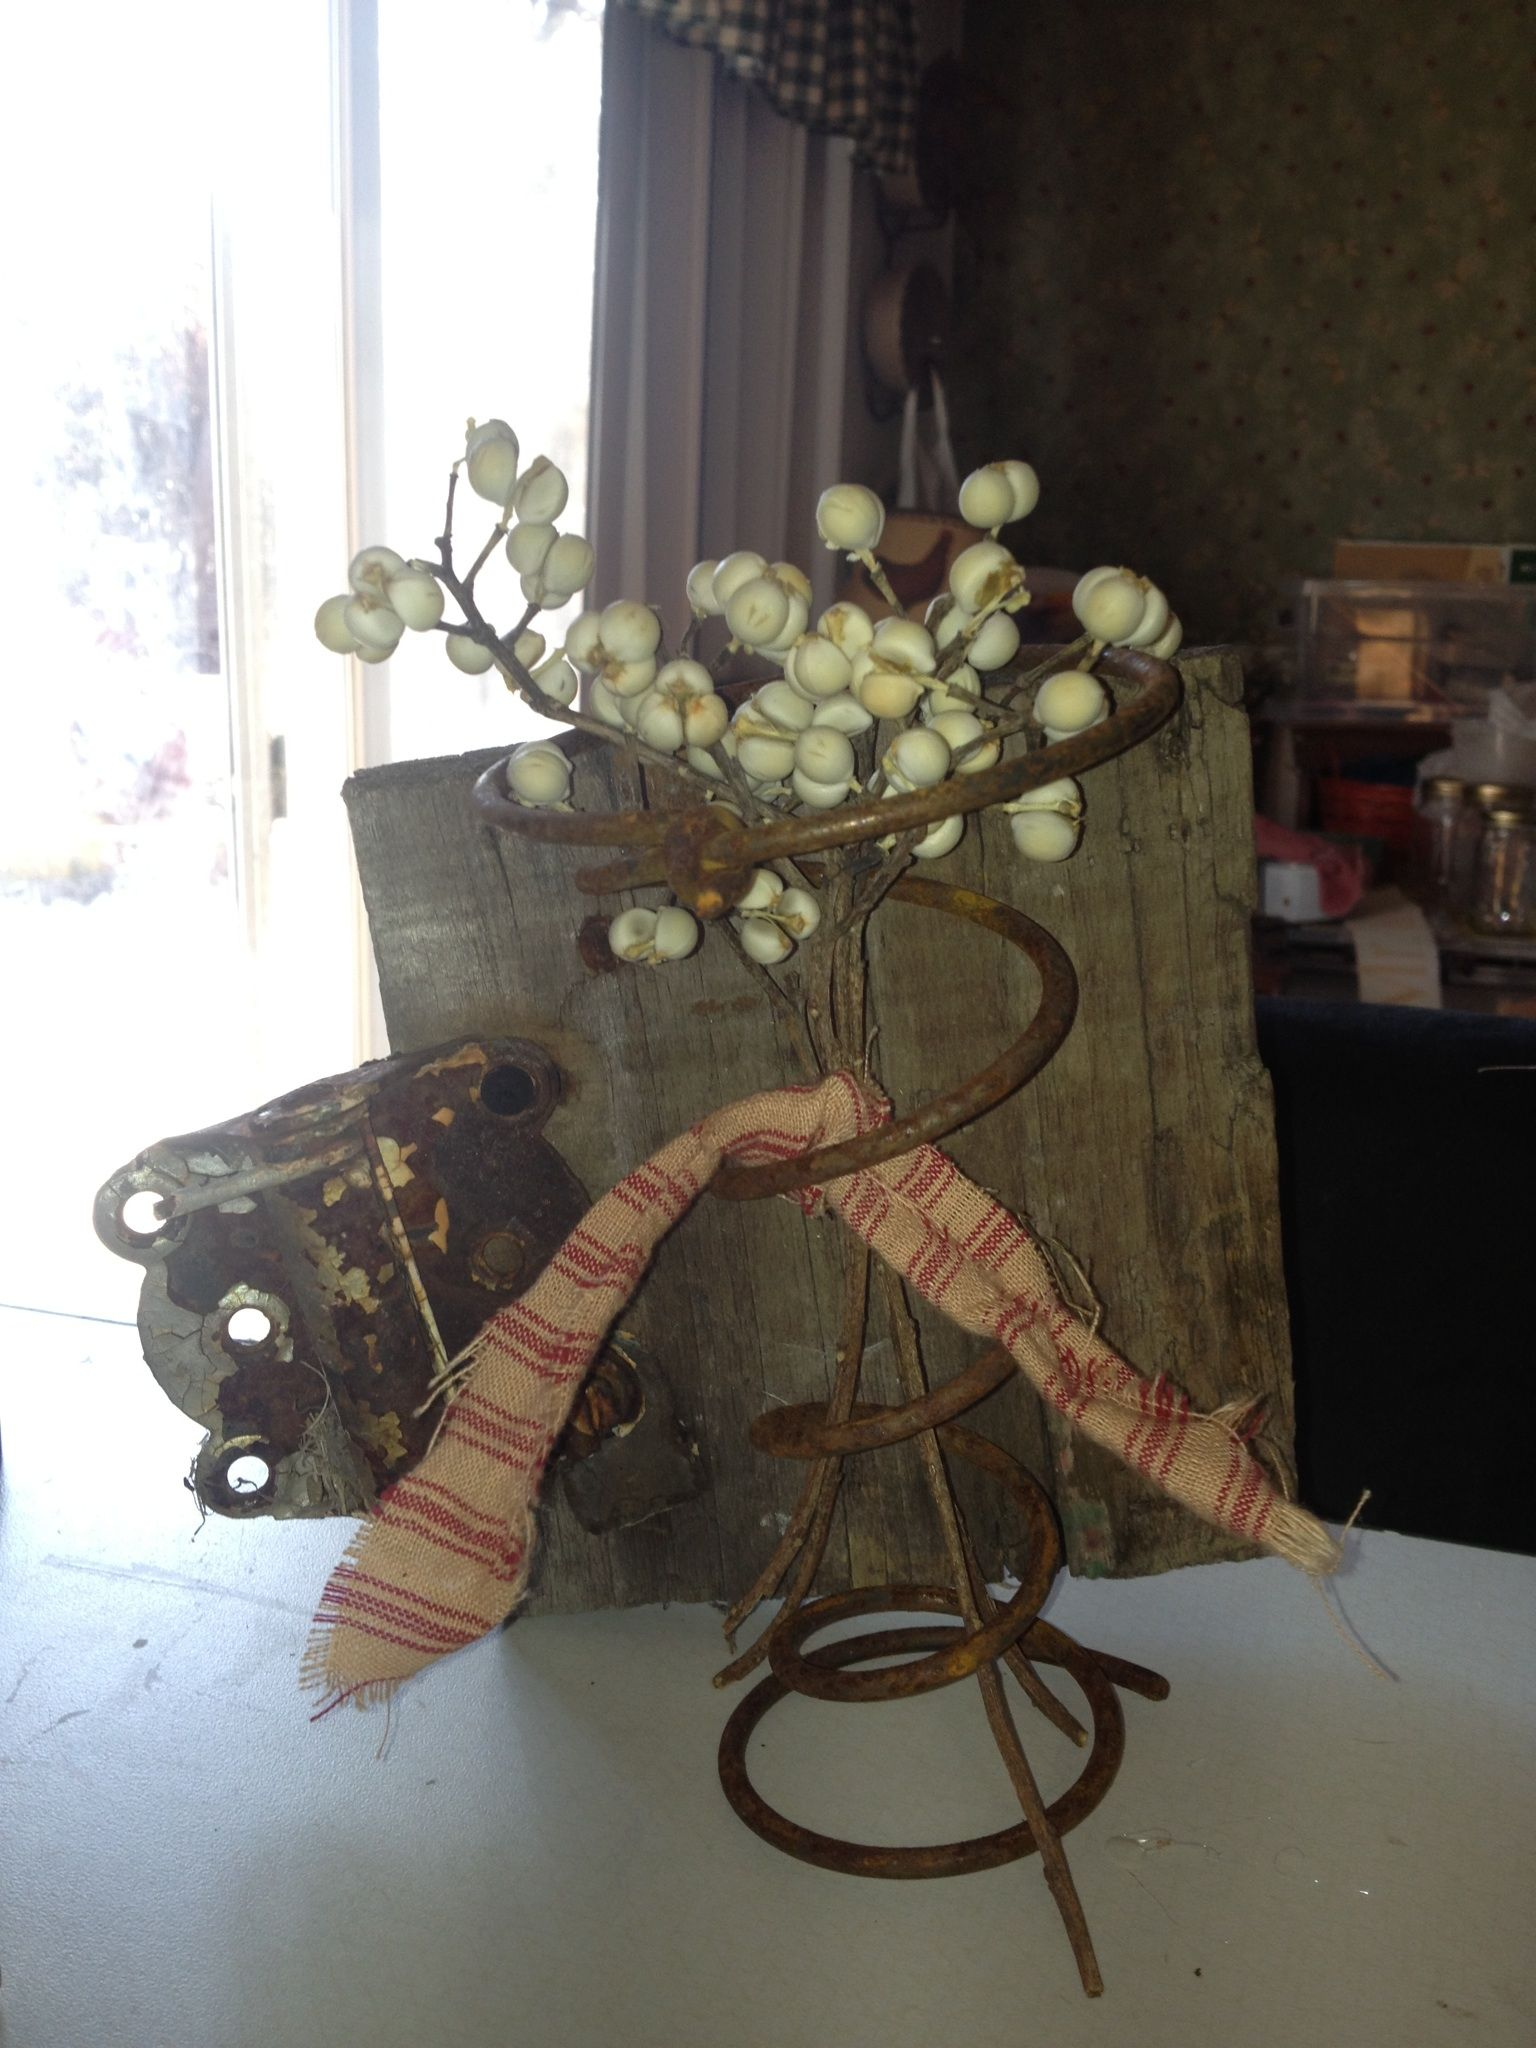 Old Hinged board, bed spring and tallow berries. Vintage